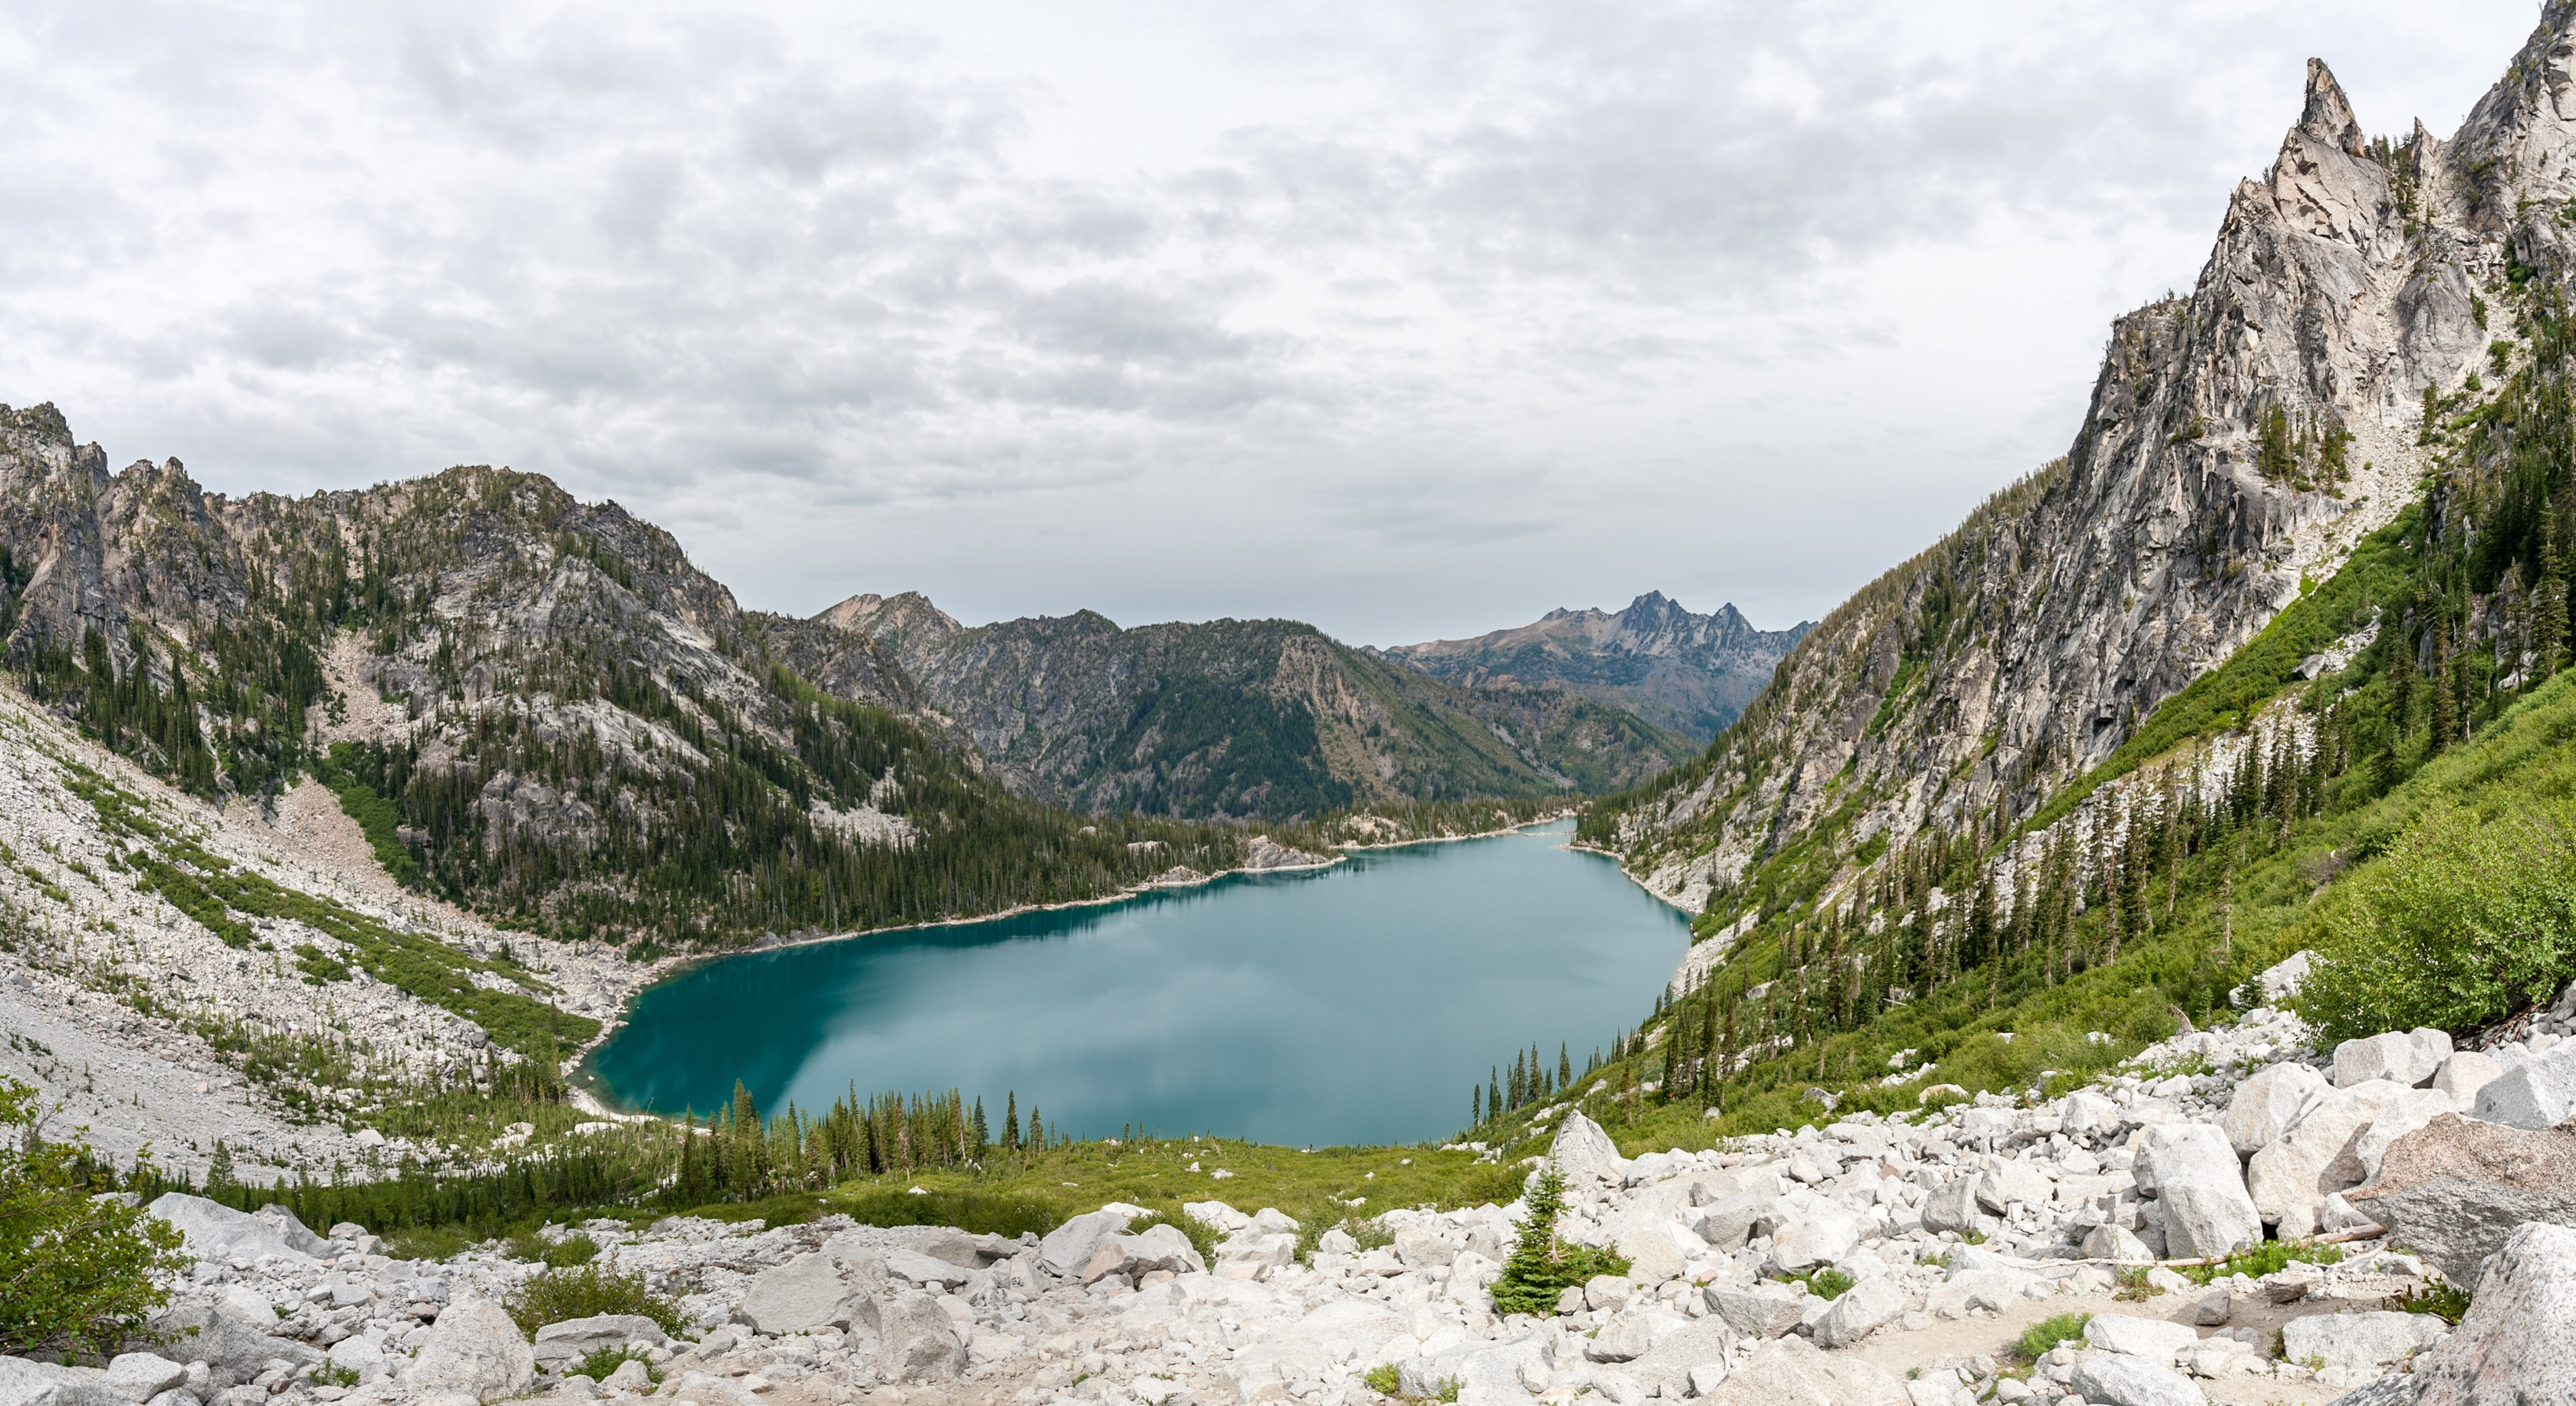 landscape photography of lake and mountains at daytime